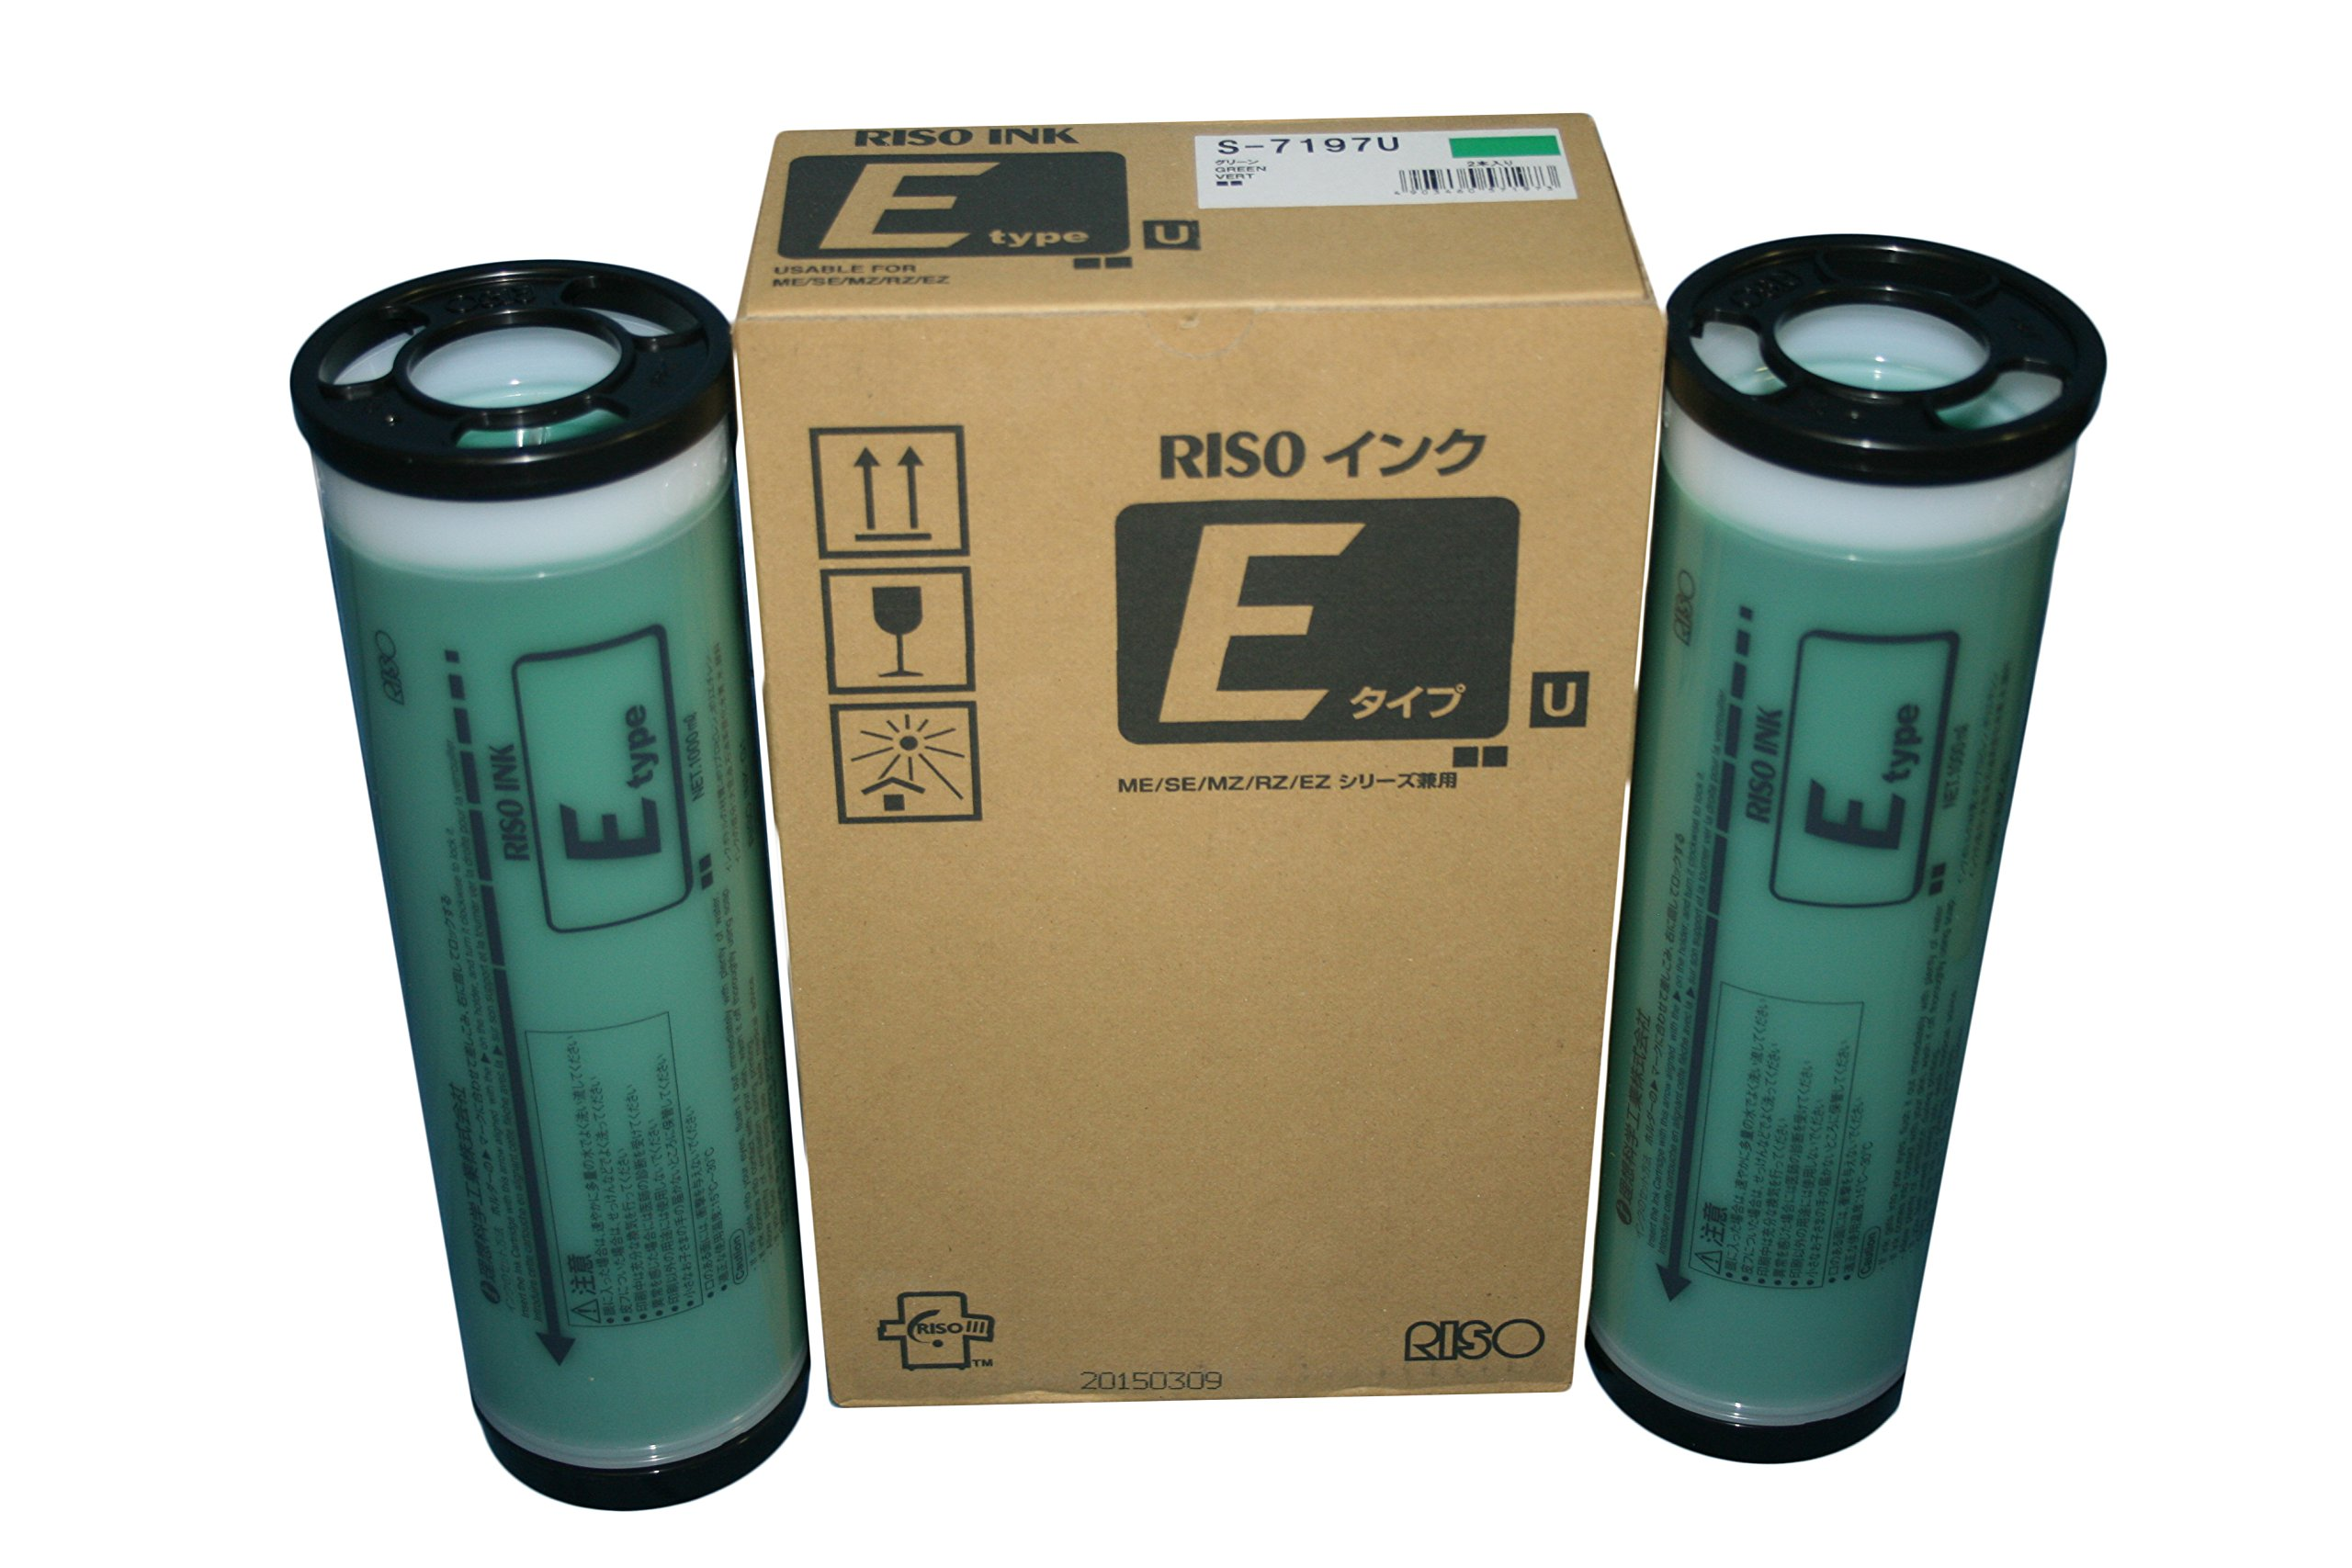 2 Riso S-7197 Green Ink, for Risograph EZ, MZ, and RZ Series Duplicators by RISO (Image #1)